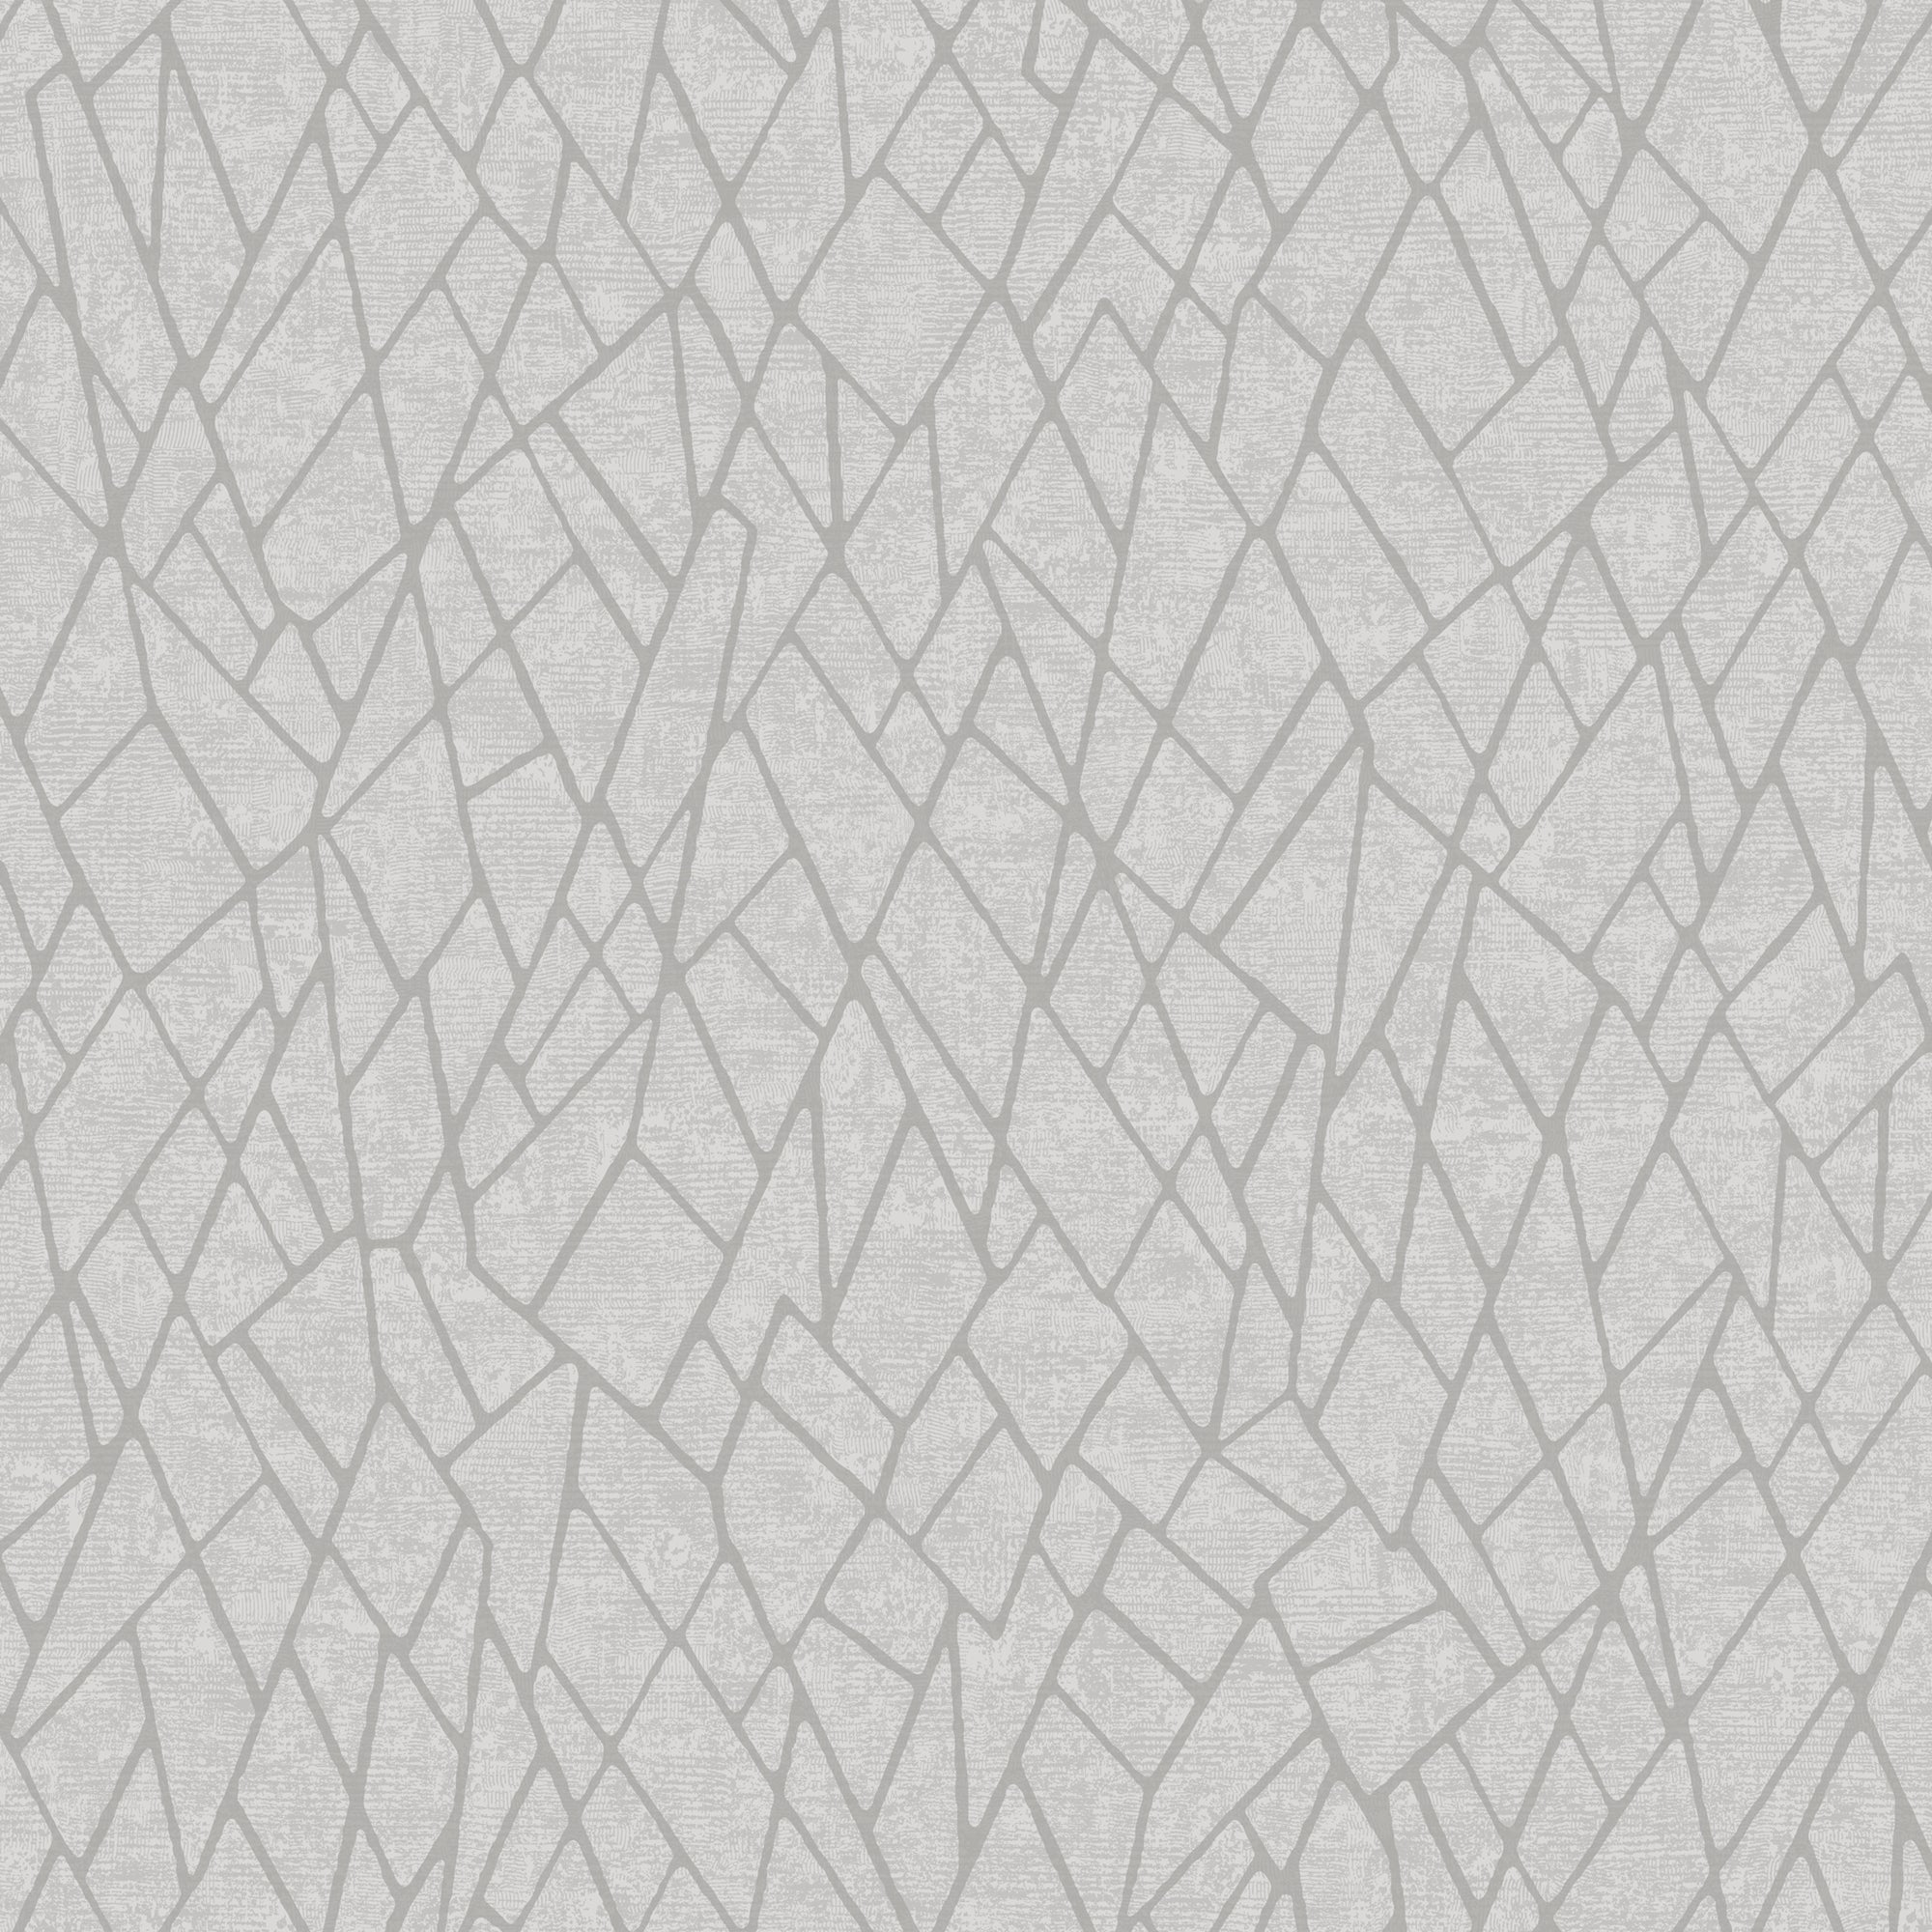 Beaded, Abstract Geometric On A Grey Textured Background. 8149 92